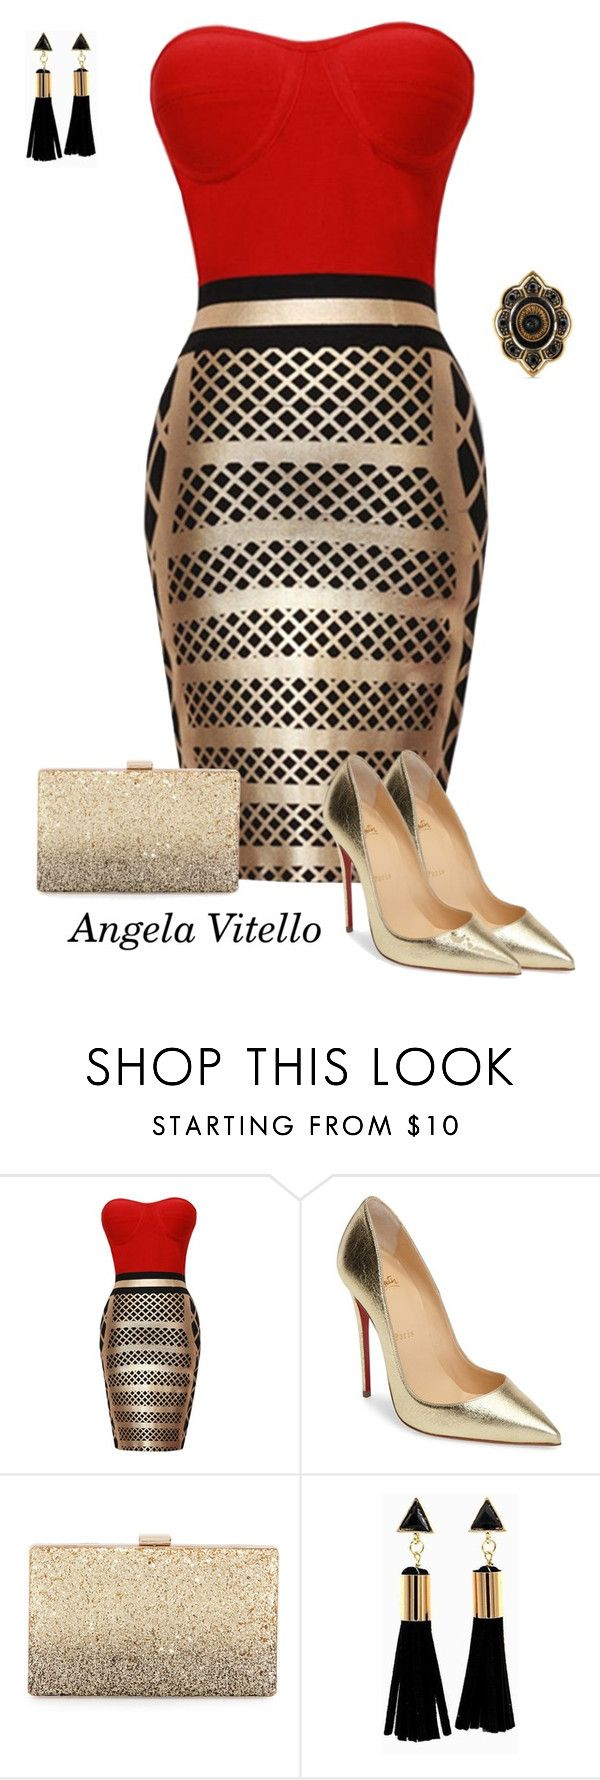 """Untitled #911"" by angela-vitello on Polyvore featuring Christian Louboutin, Neiman Marcus and Gucci"